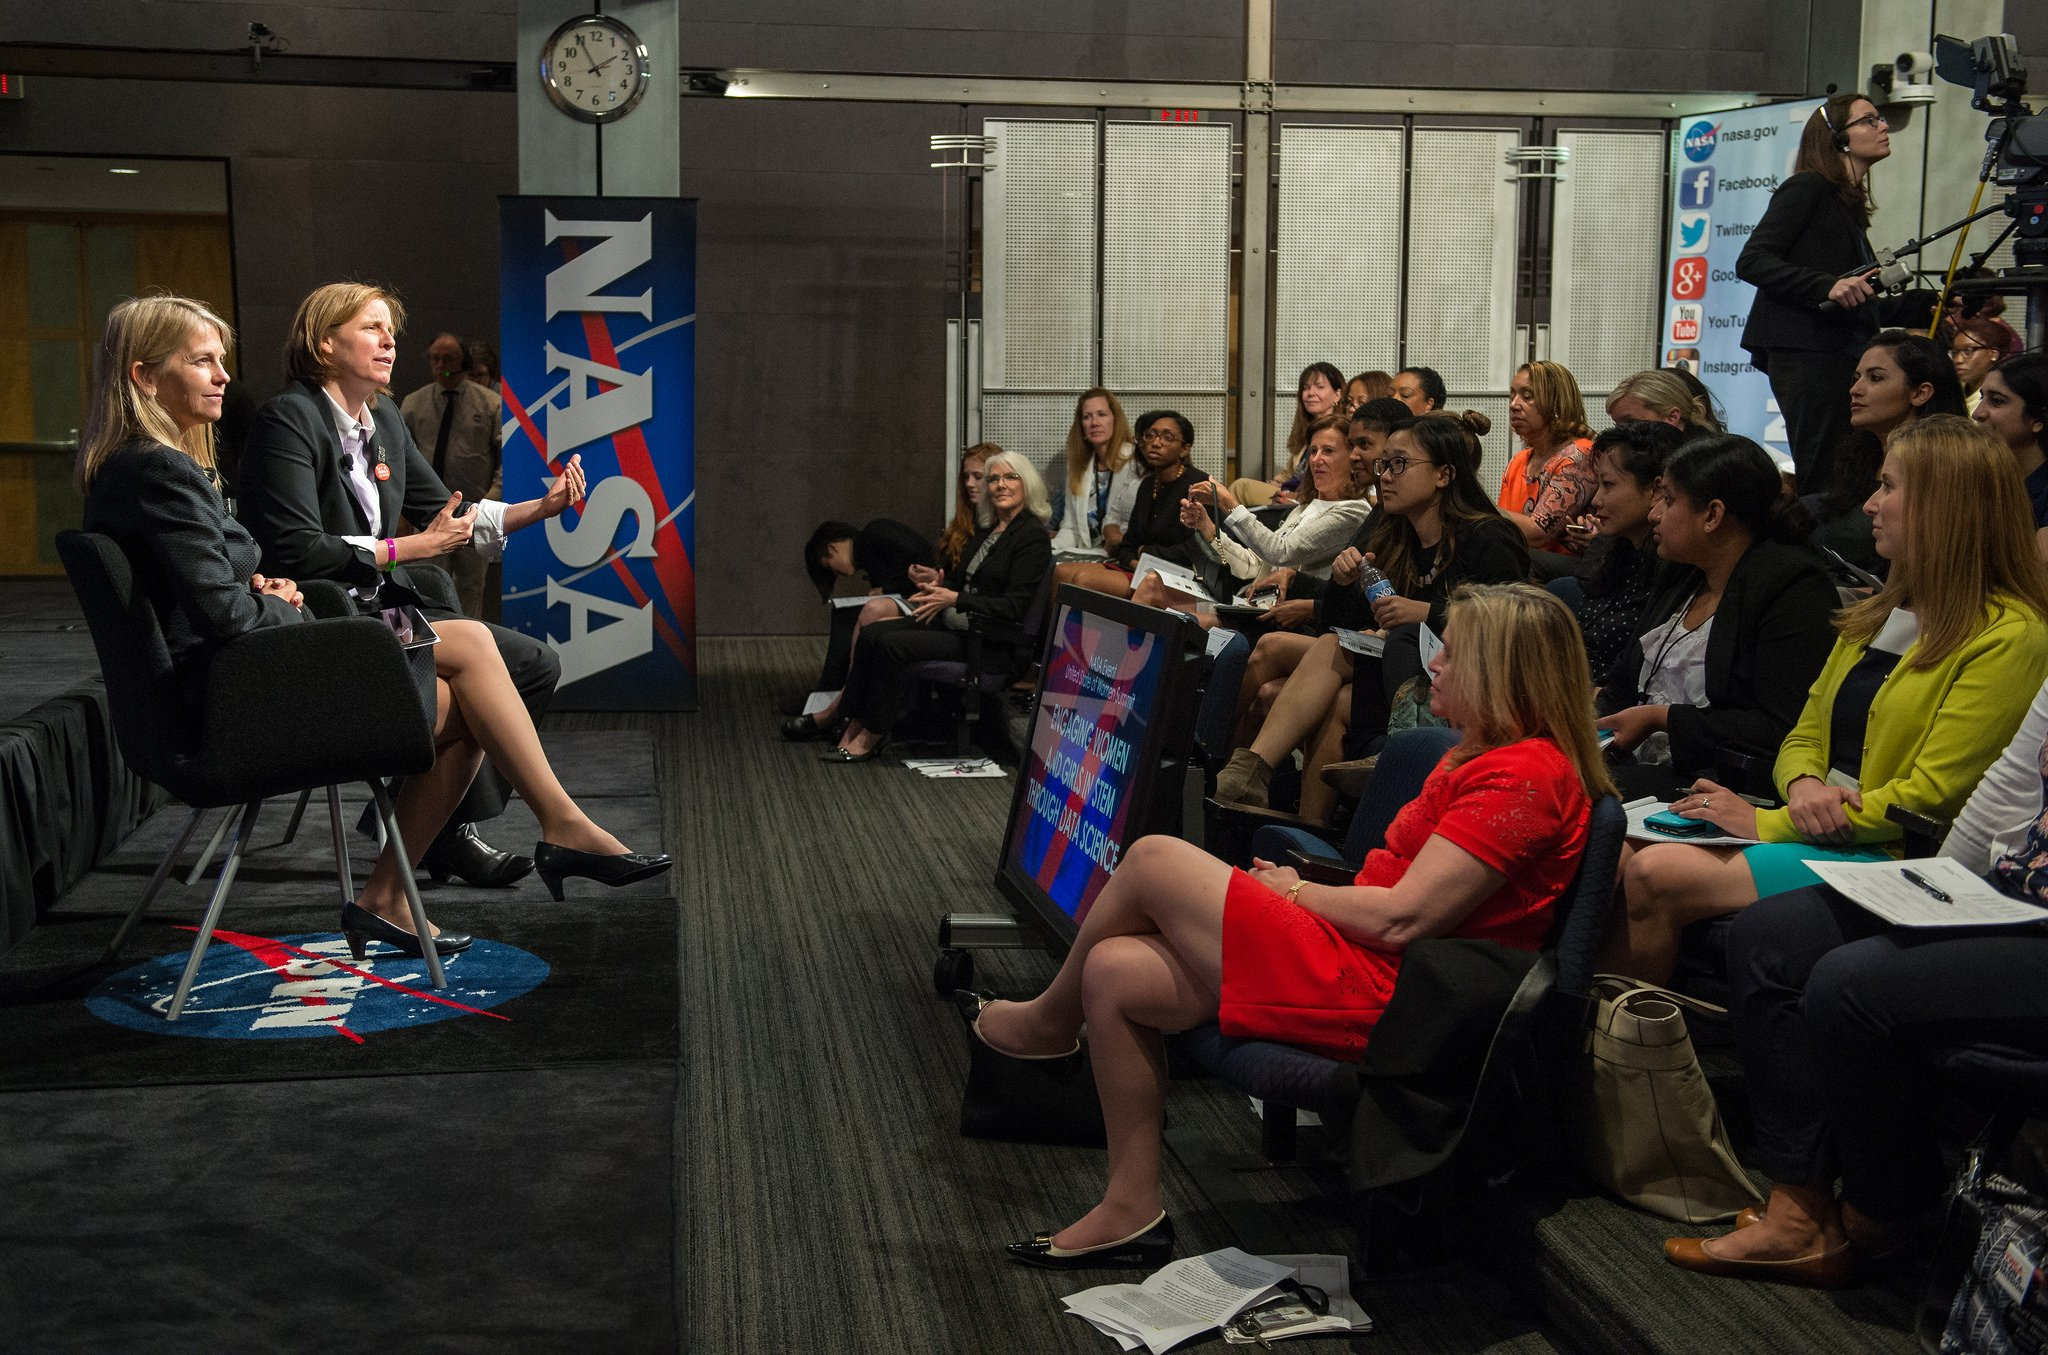 NASA's Deputy Dr. Dava Newman and USCTO Megan Smith addressing participants at NASA's White House United State of Women Summit event. Photo Credit: NASA/Aubrey Gemignani